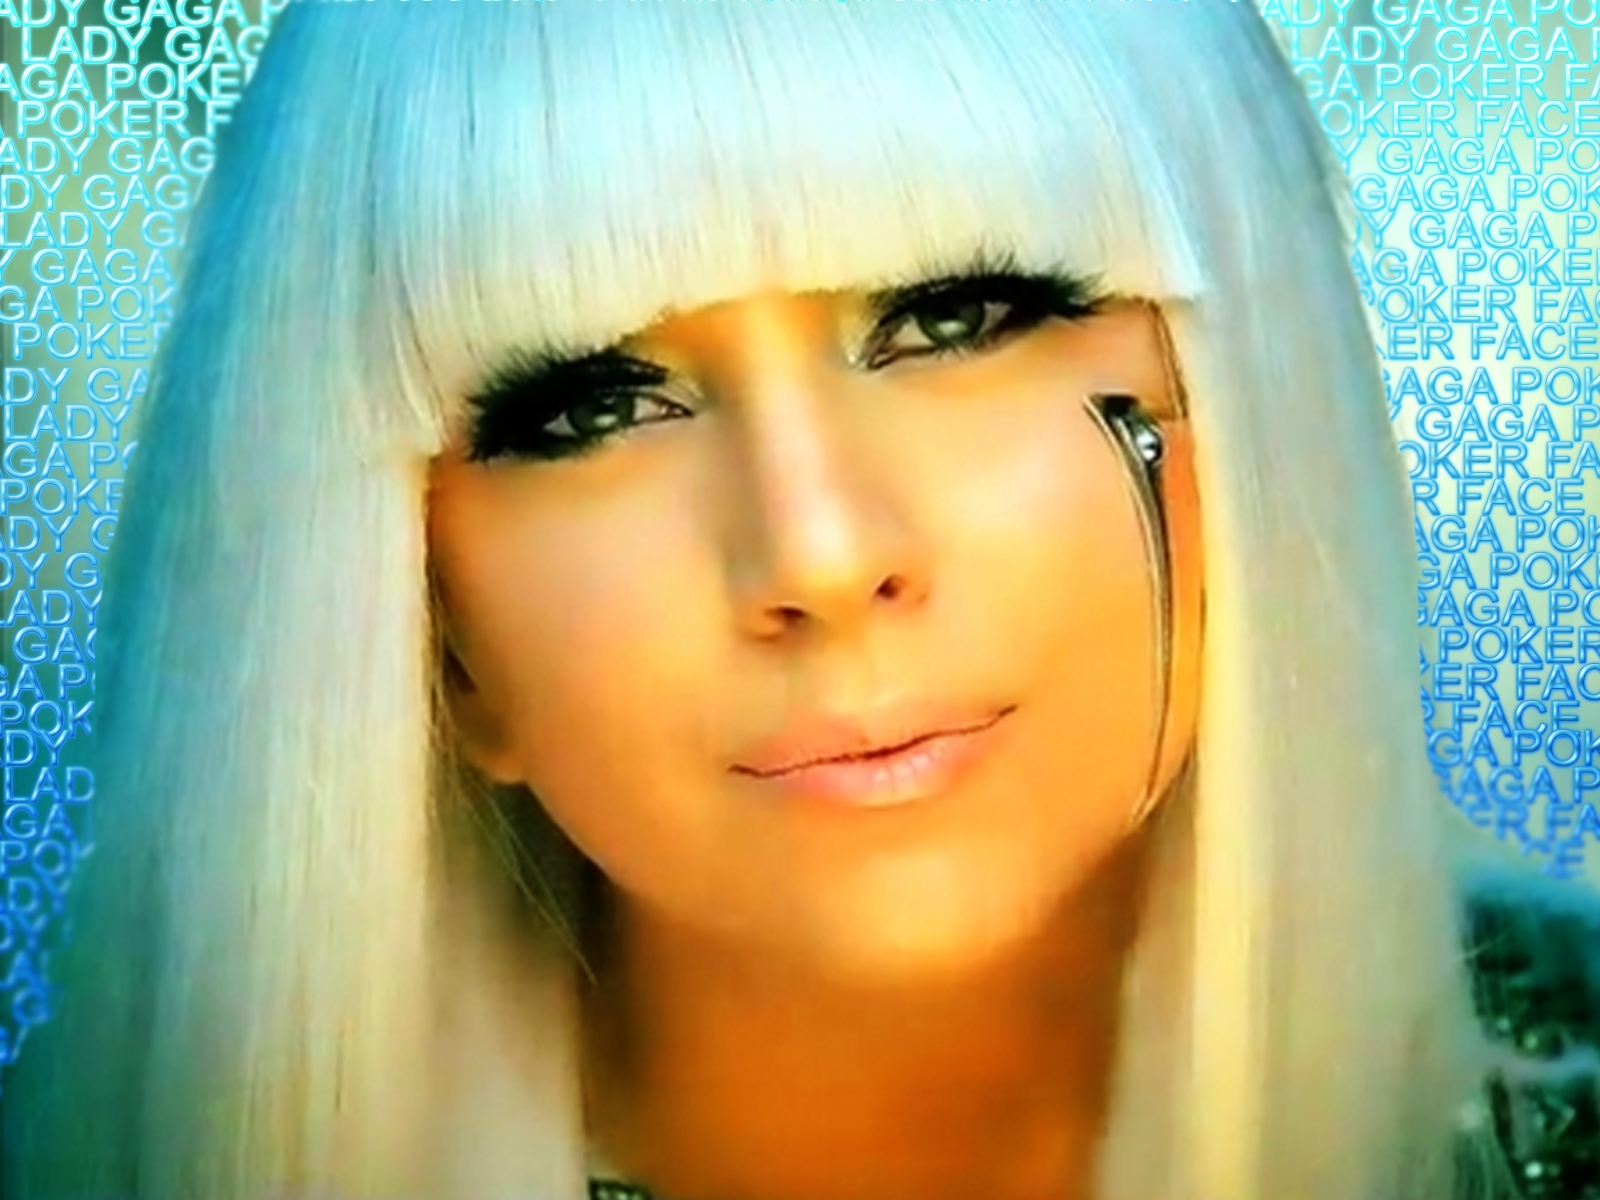 http://3.bp.blogspot.com/-8TwHcR3EPEw/Tc8Eq1lRwAI/AAAAAAAAAEw/QfG0tJef-yg/s1600/judas_lyrics_video_ladygaga.jpg